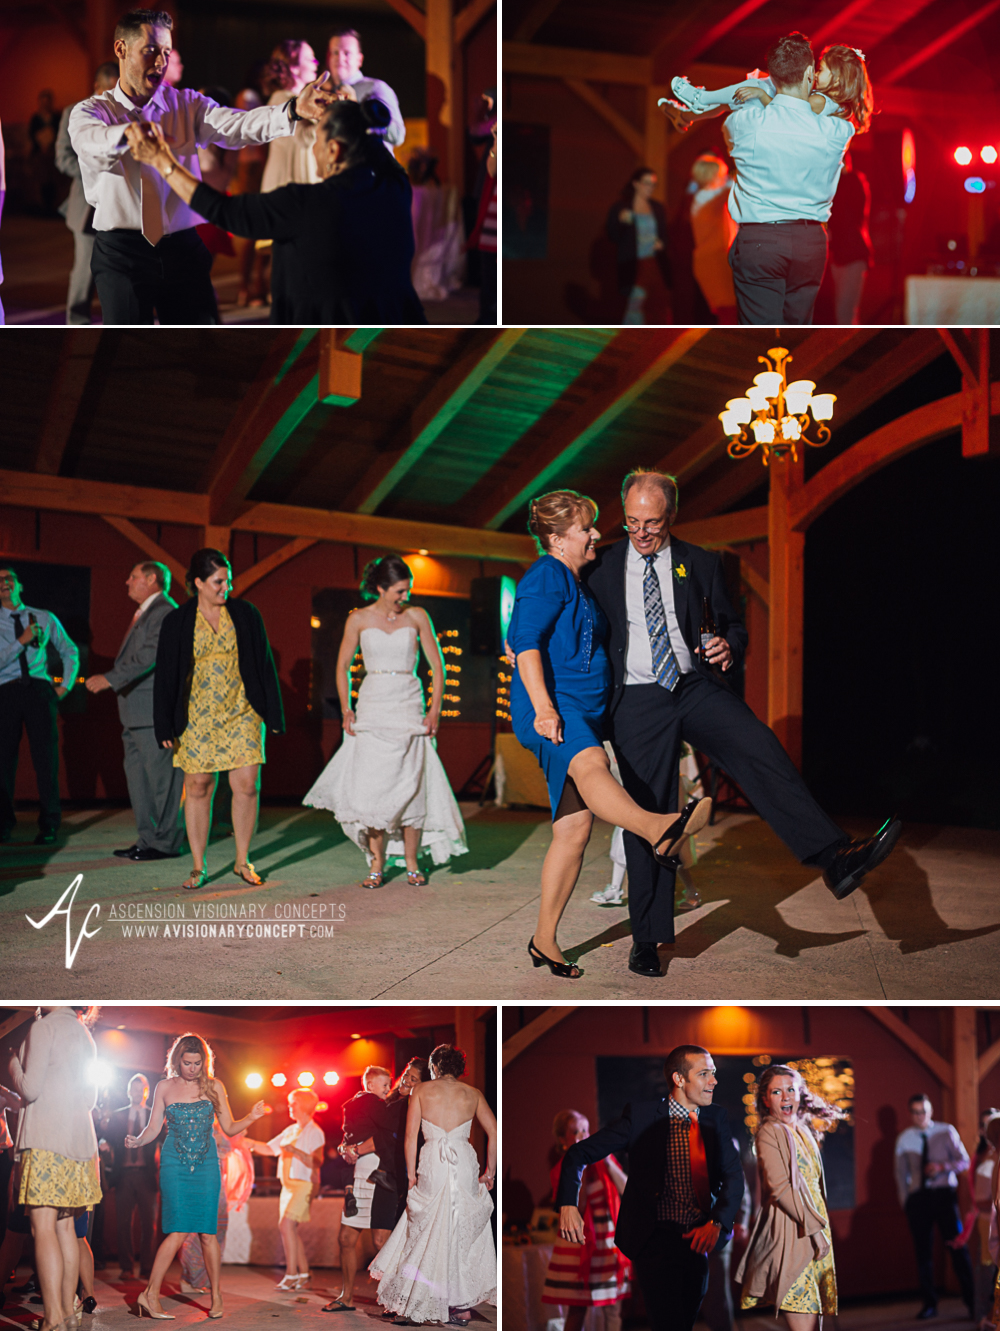 Buffalo Wedding Photography Spring Lake Winery 085 - Wedding Reception Dancing Party Lights.jpg